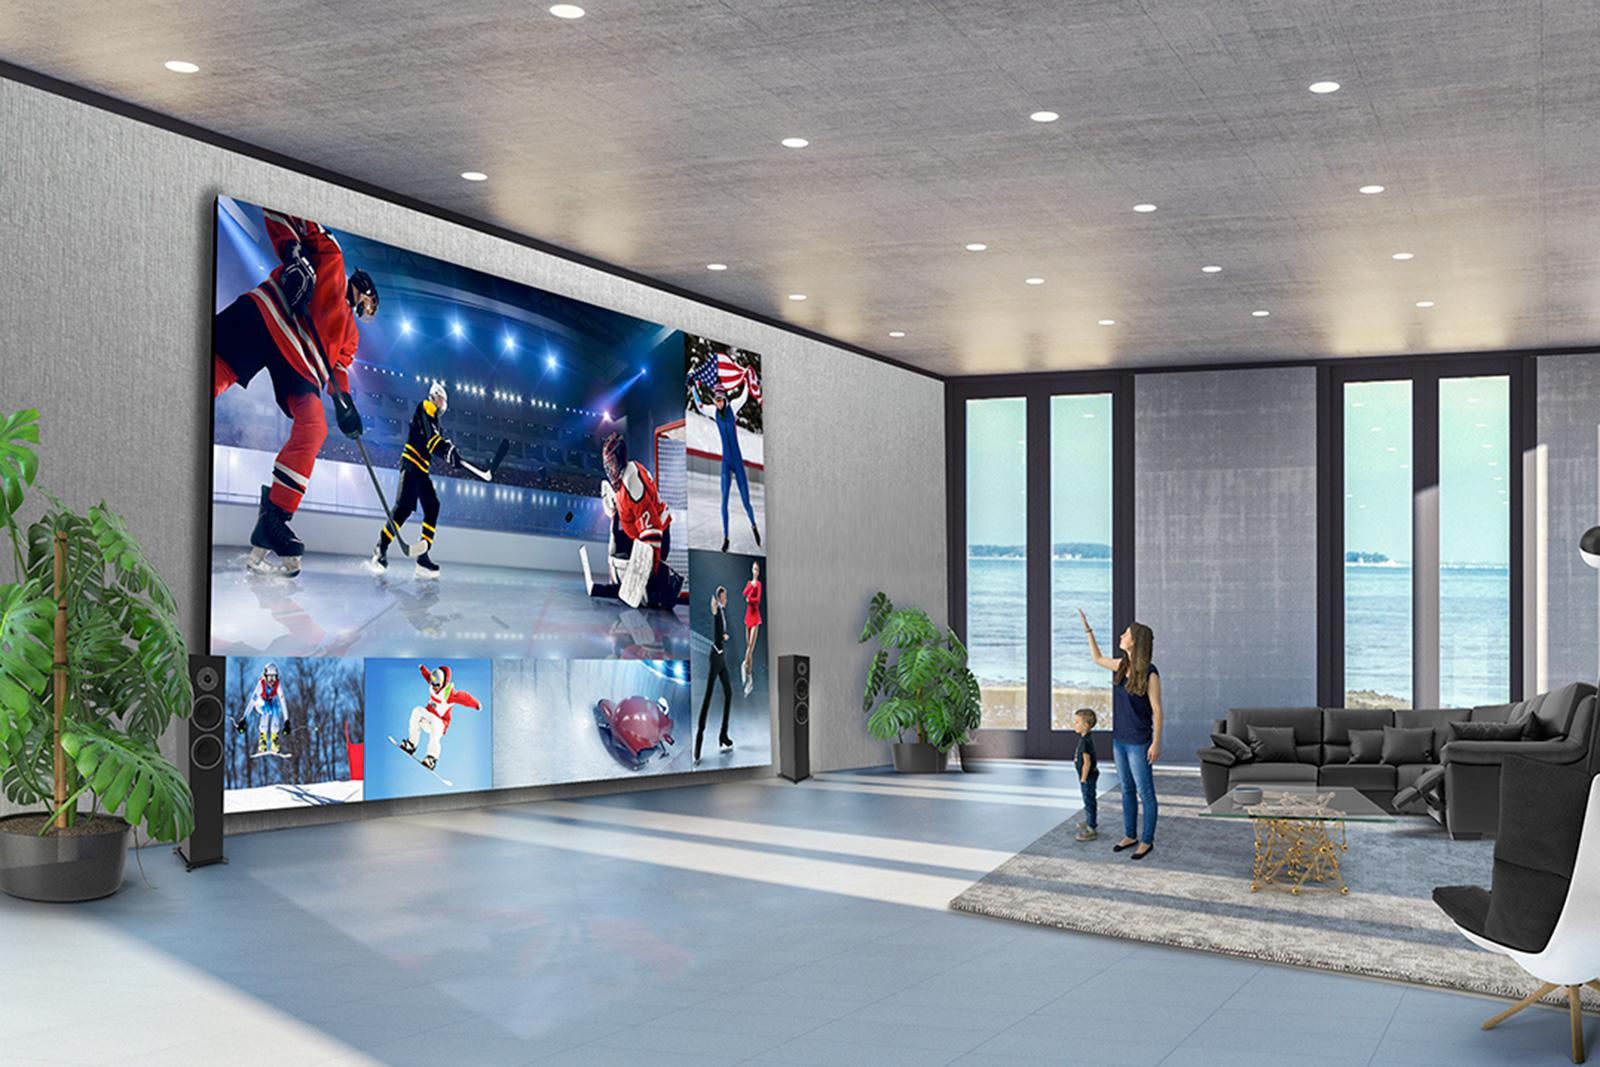 LG Direct View LED Extreme Home Cinema